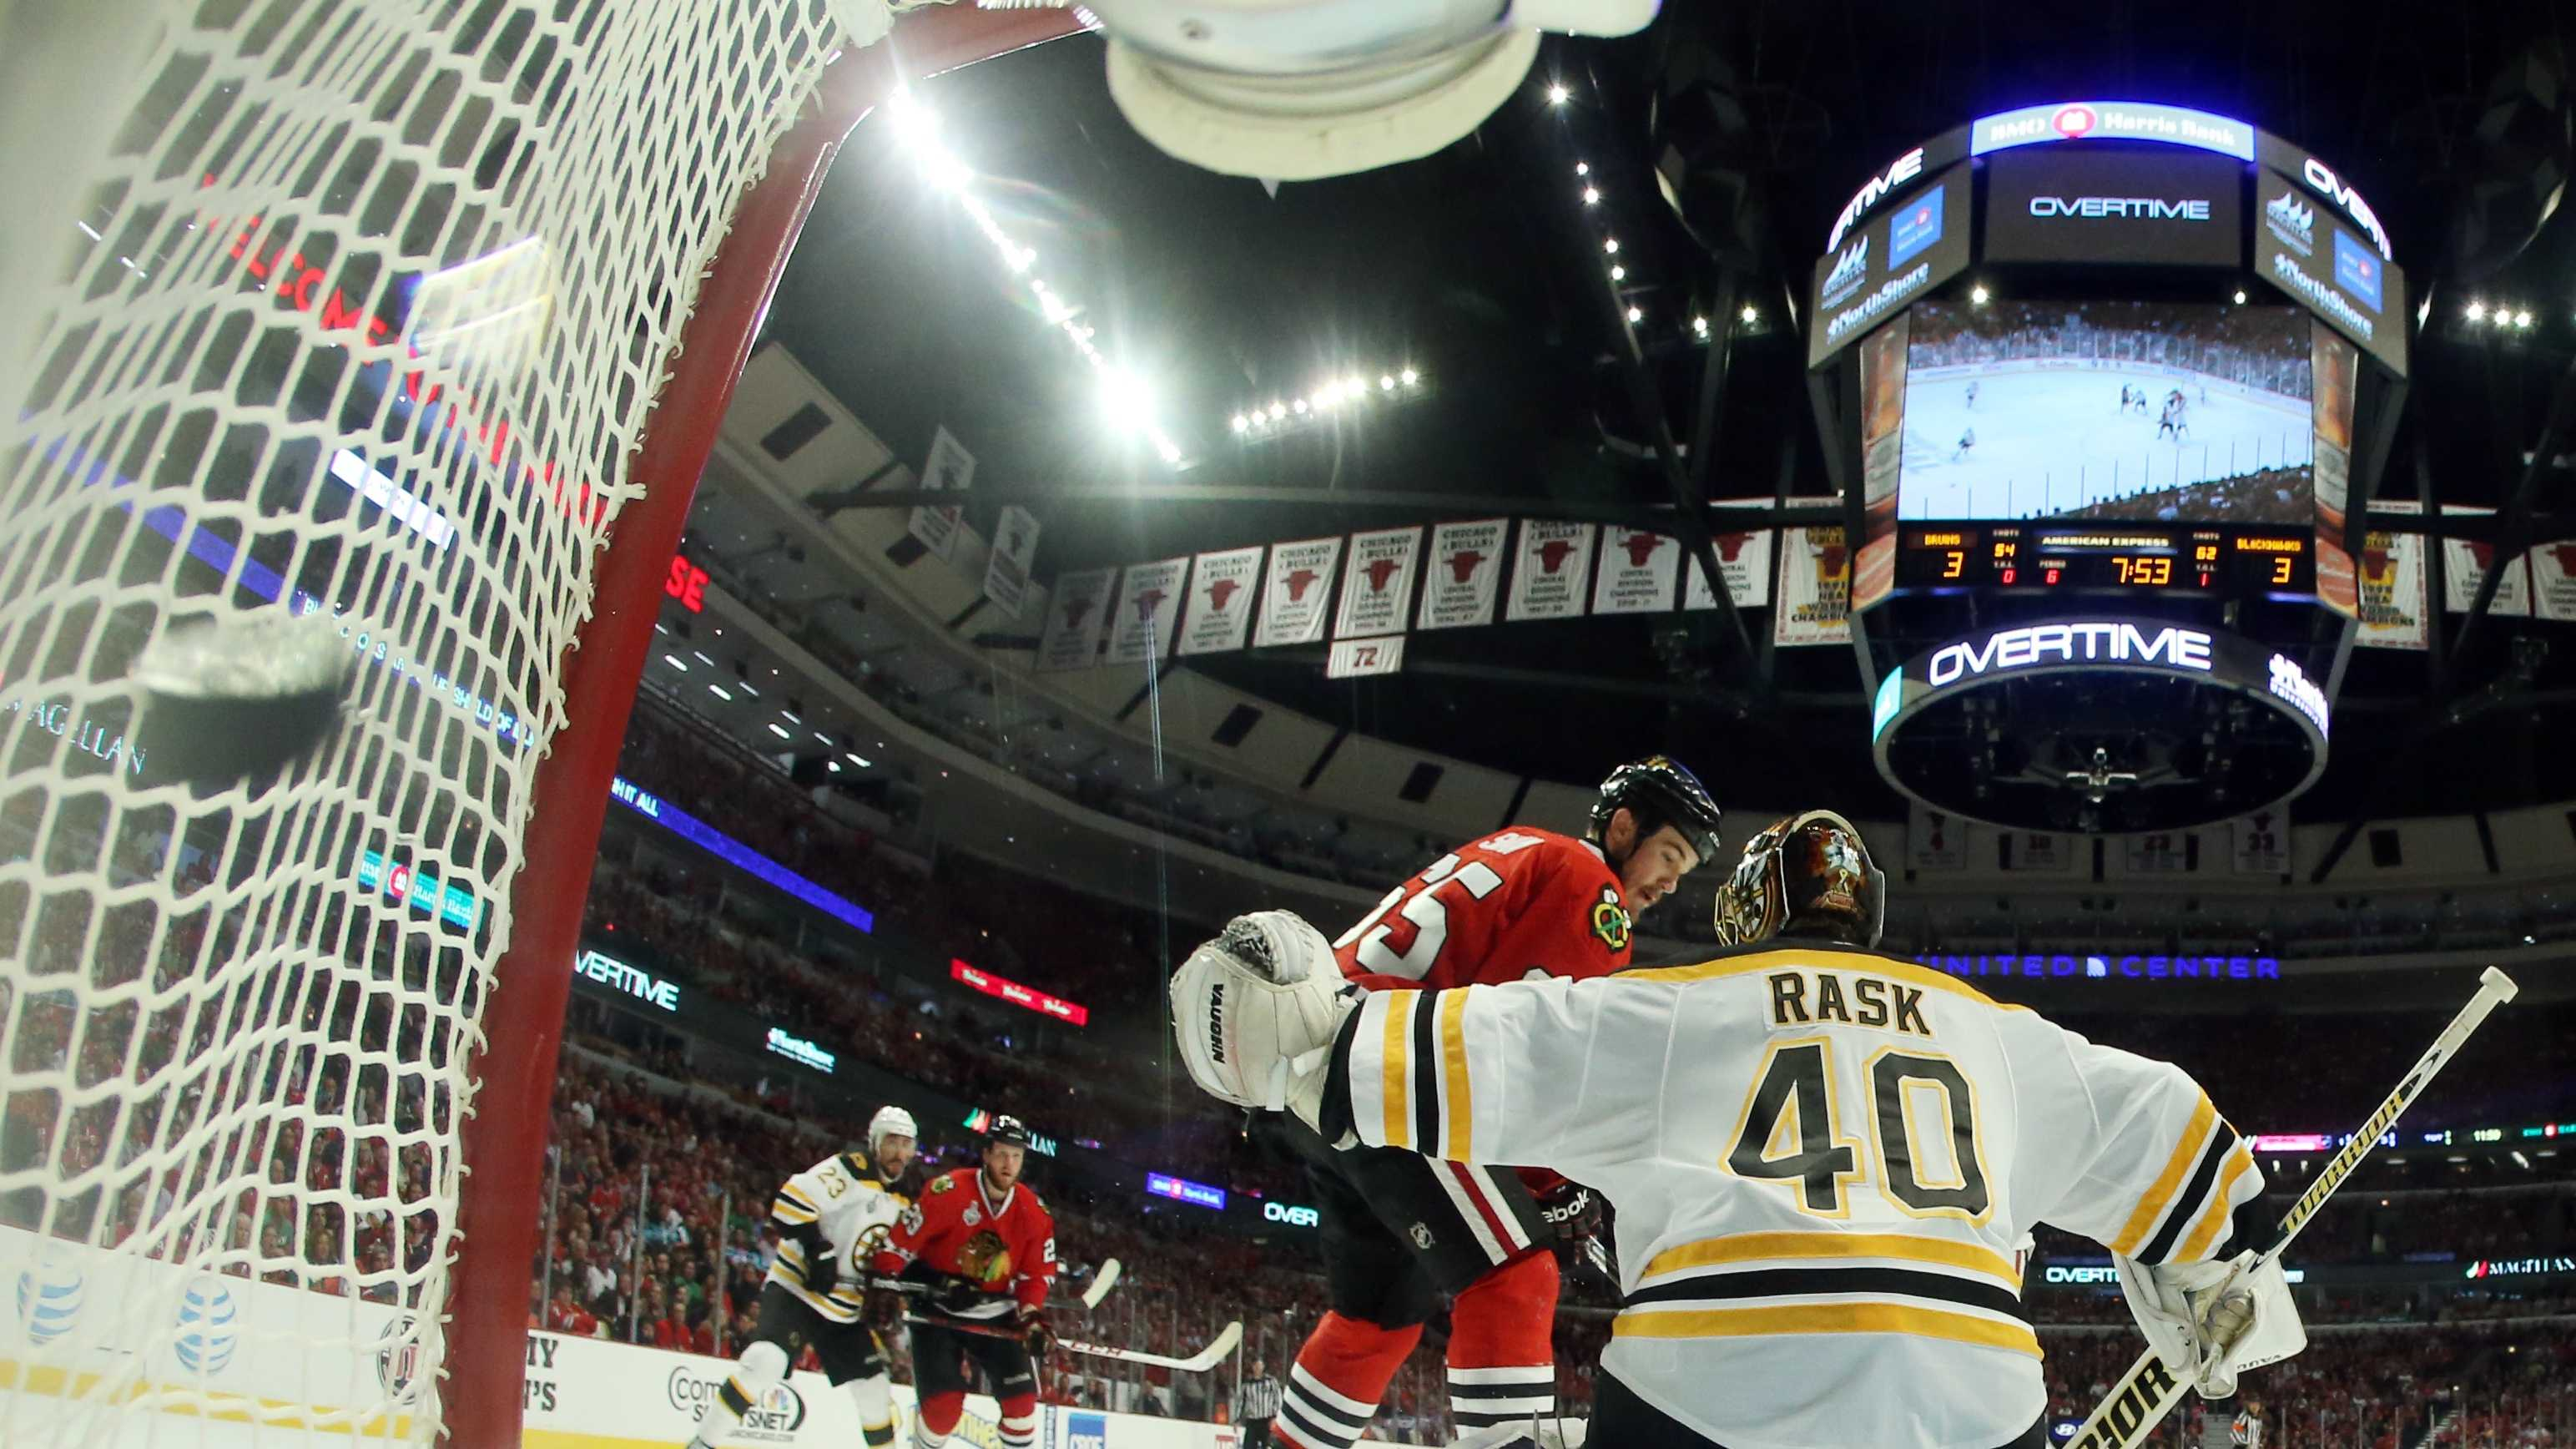 The puck flies into the net as Chicago Blackhawks center Andrew Shaw (65) scores the game winning goal against Boston Bruins goalie Tuukka Rask (40) during the third overtime period of Game 1 in their NHL Stanley Cup Final hockey series, Wednesday, June 12, 2013, in Chicago. The Blackhawks won 4-3